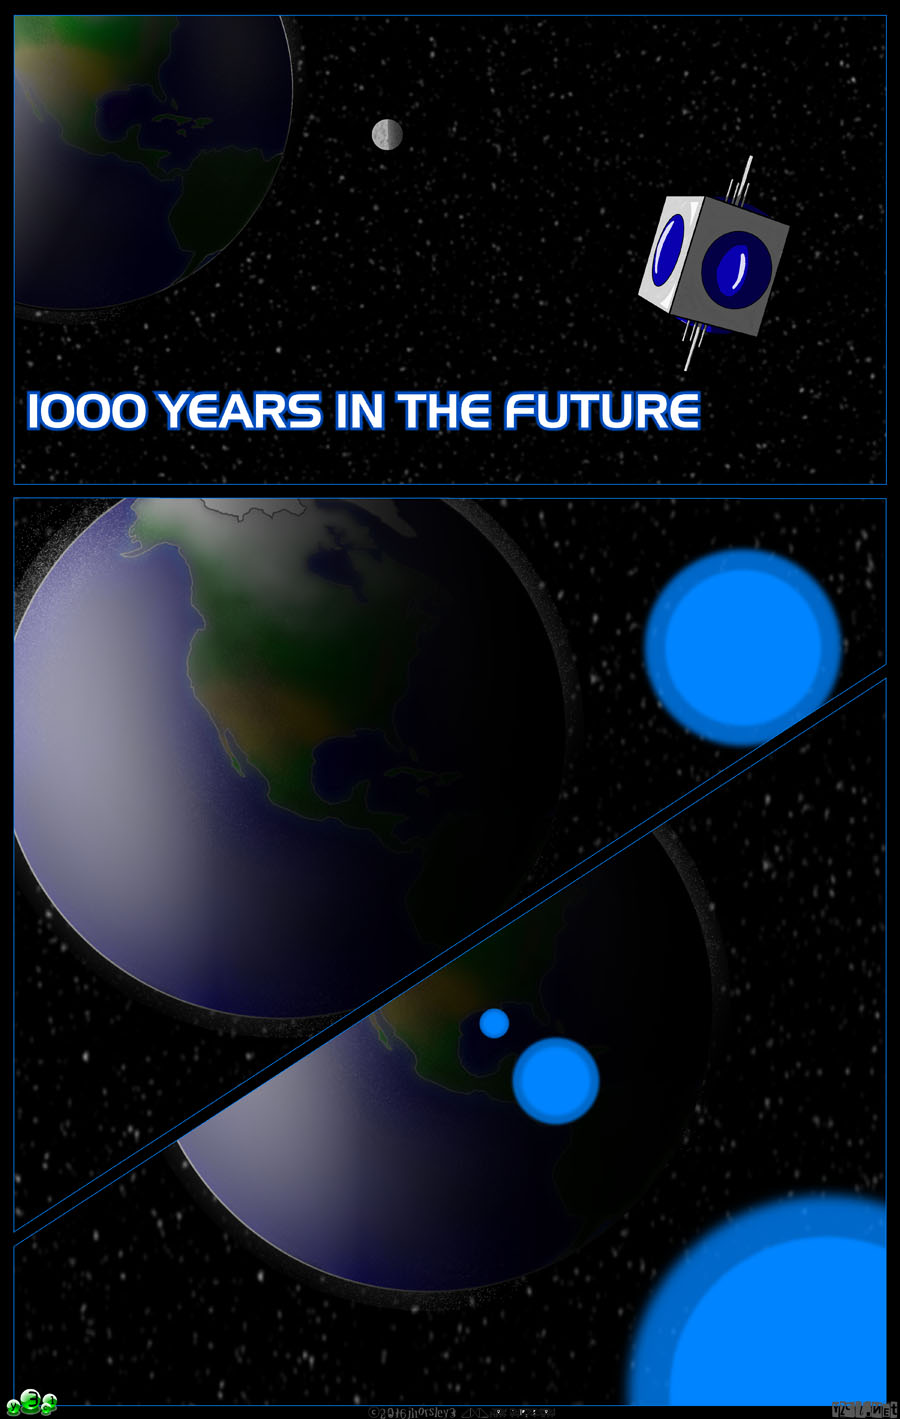 1,000 Years in the Future